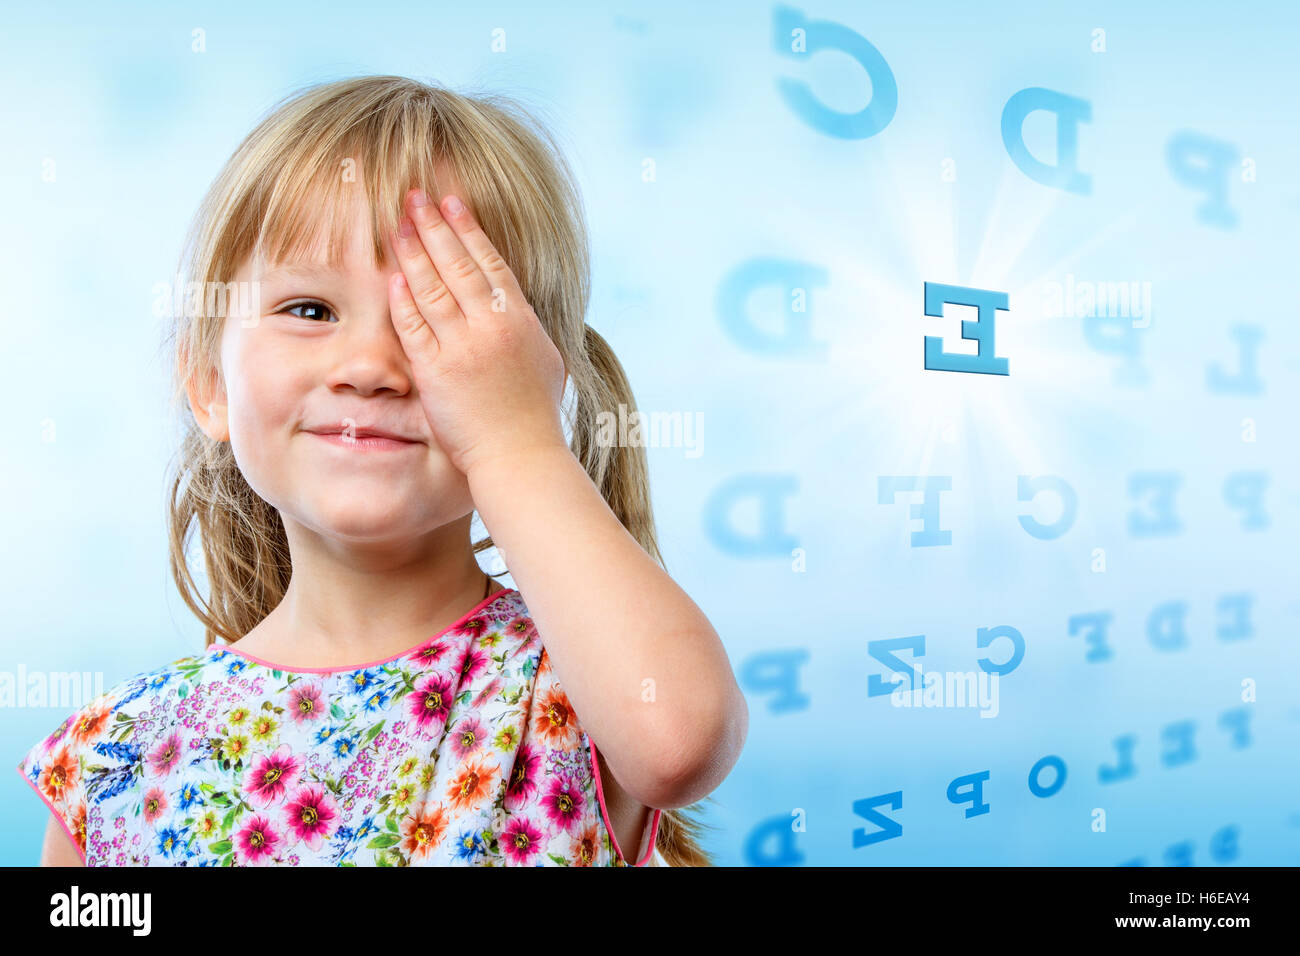 Close up portrait of little girl reading eye chart young kid close up portrait of little girl reading eye chart young kid testing one eye on block letter vision chart nvjuhfo Image collections